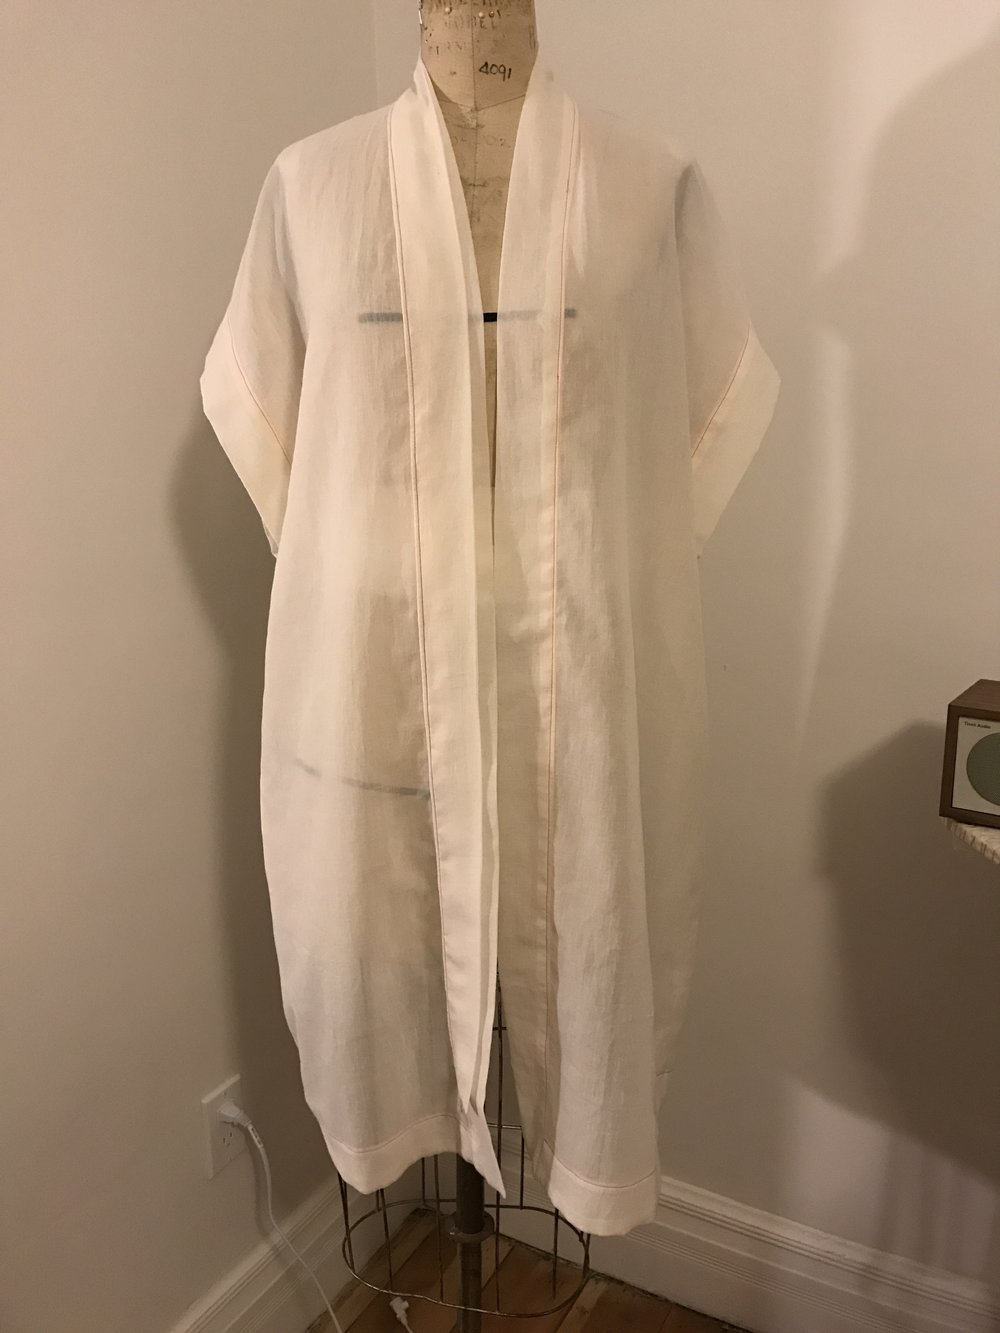 A kimono test proto: pattern drafting and garment construction